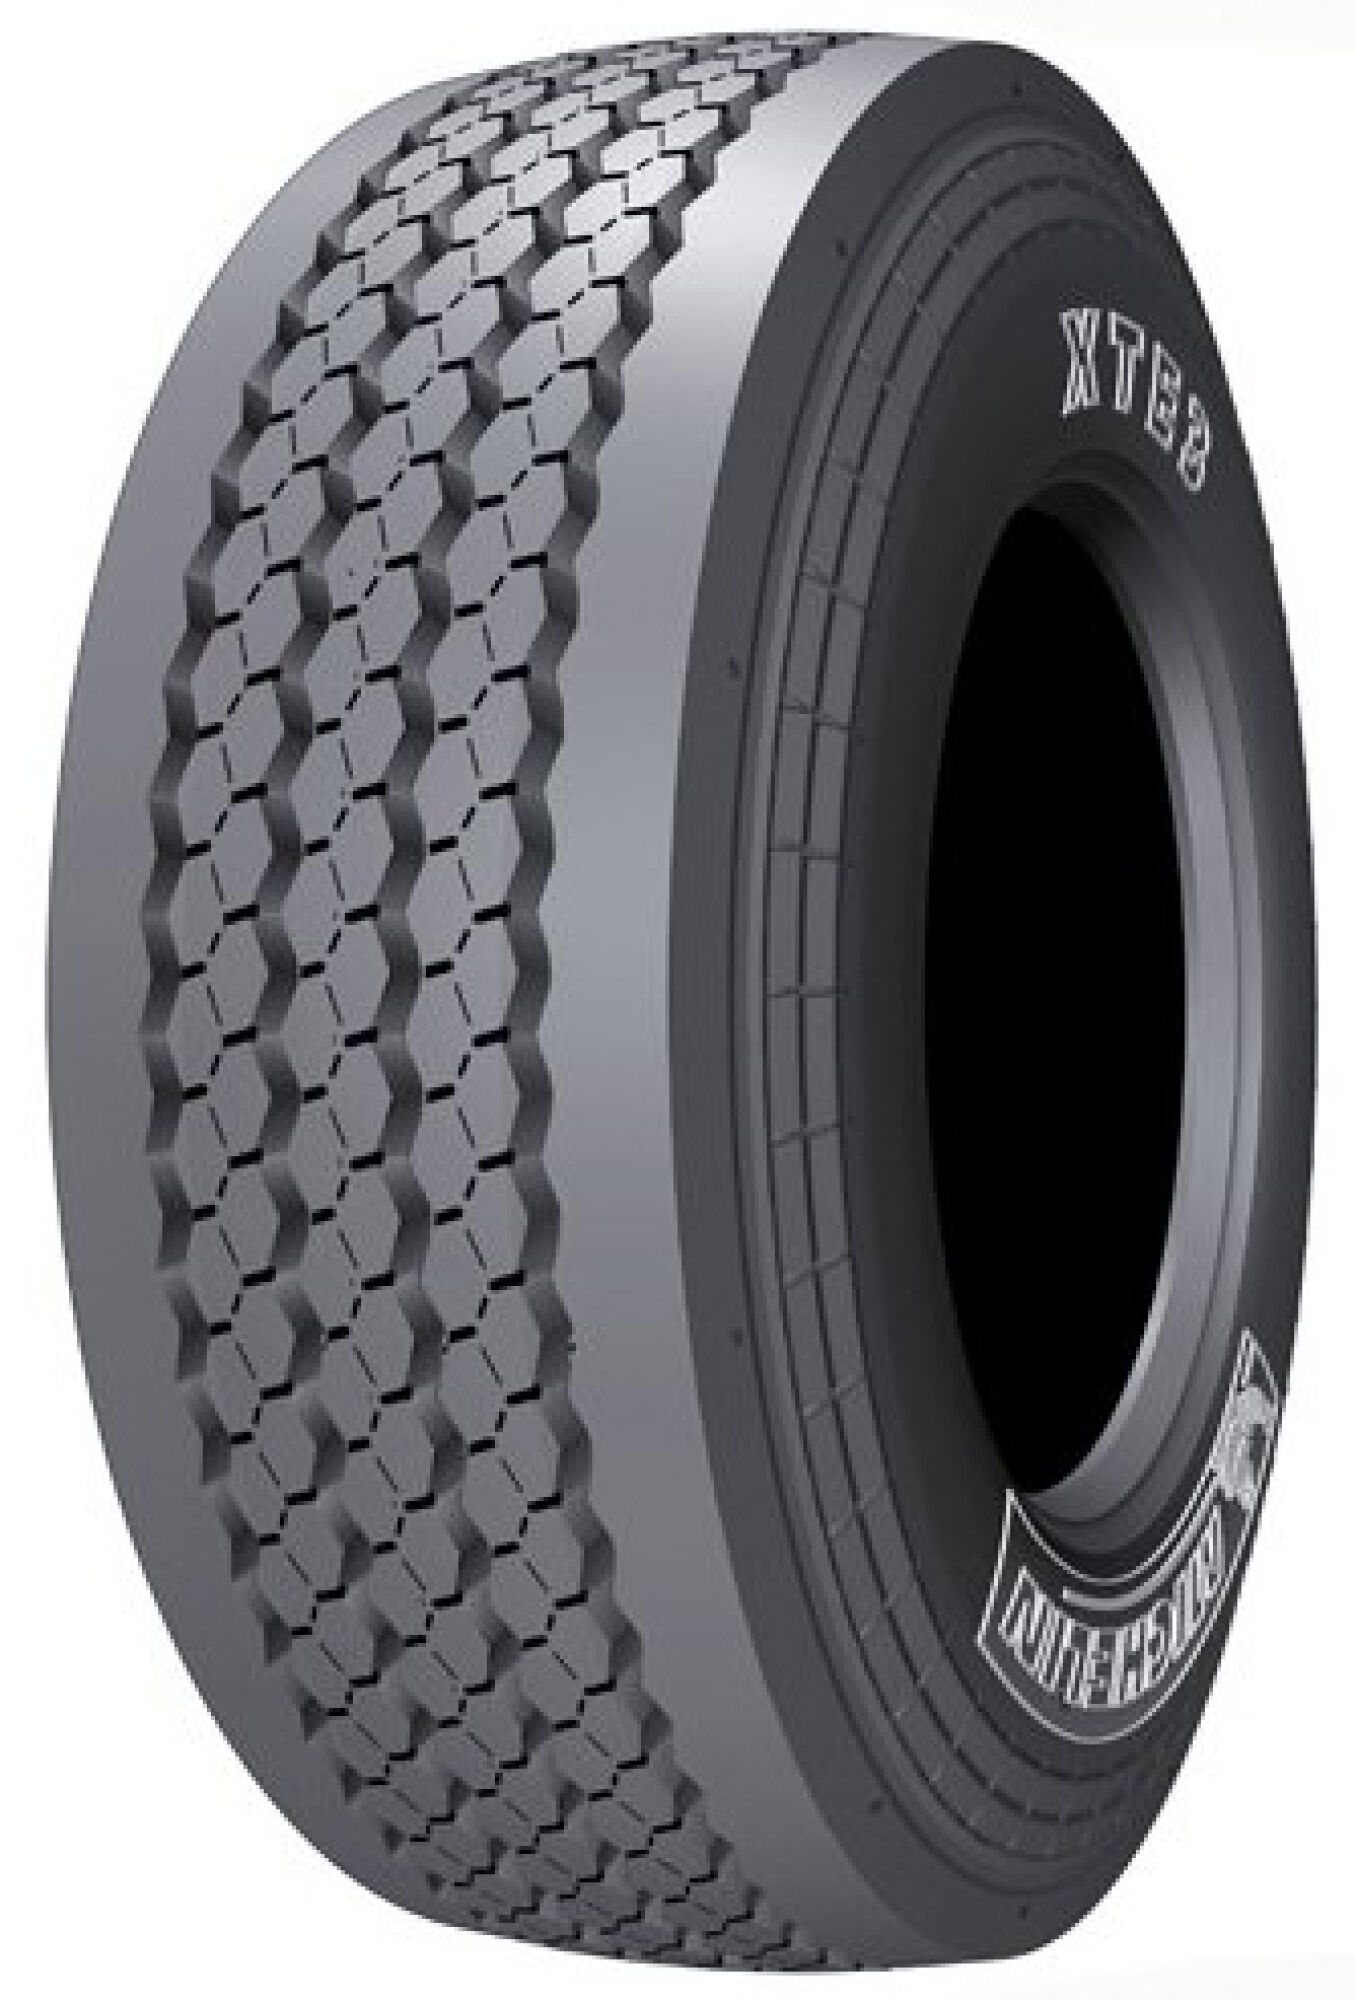 Michelin XTE 3